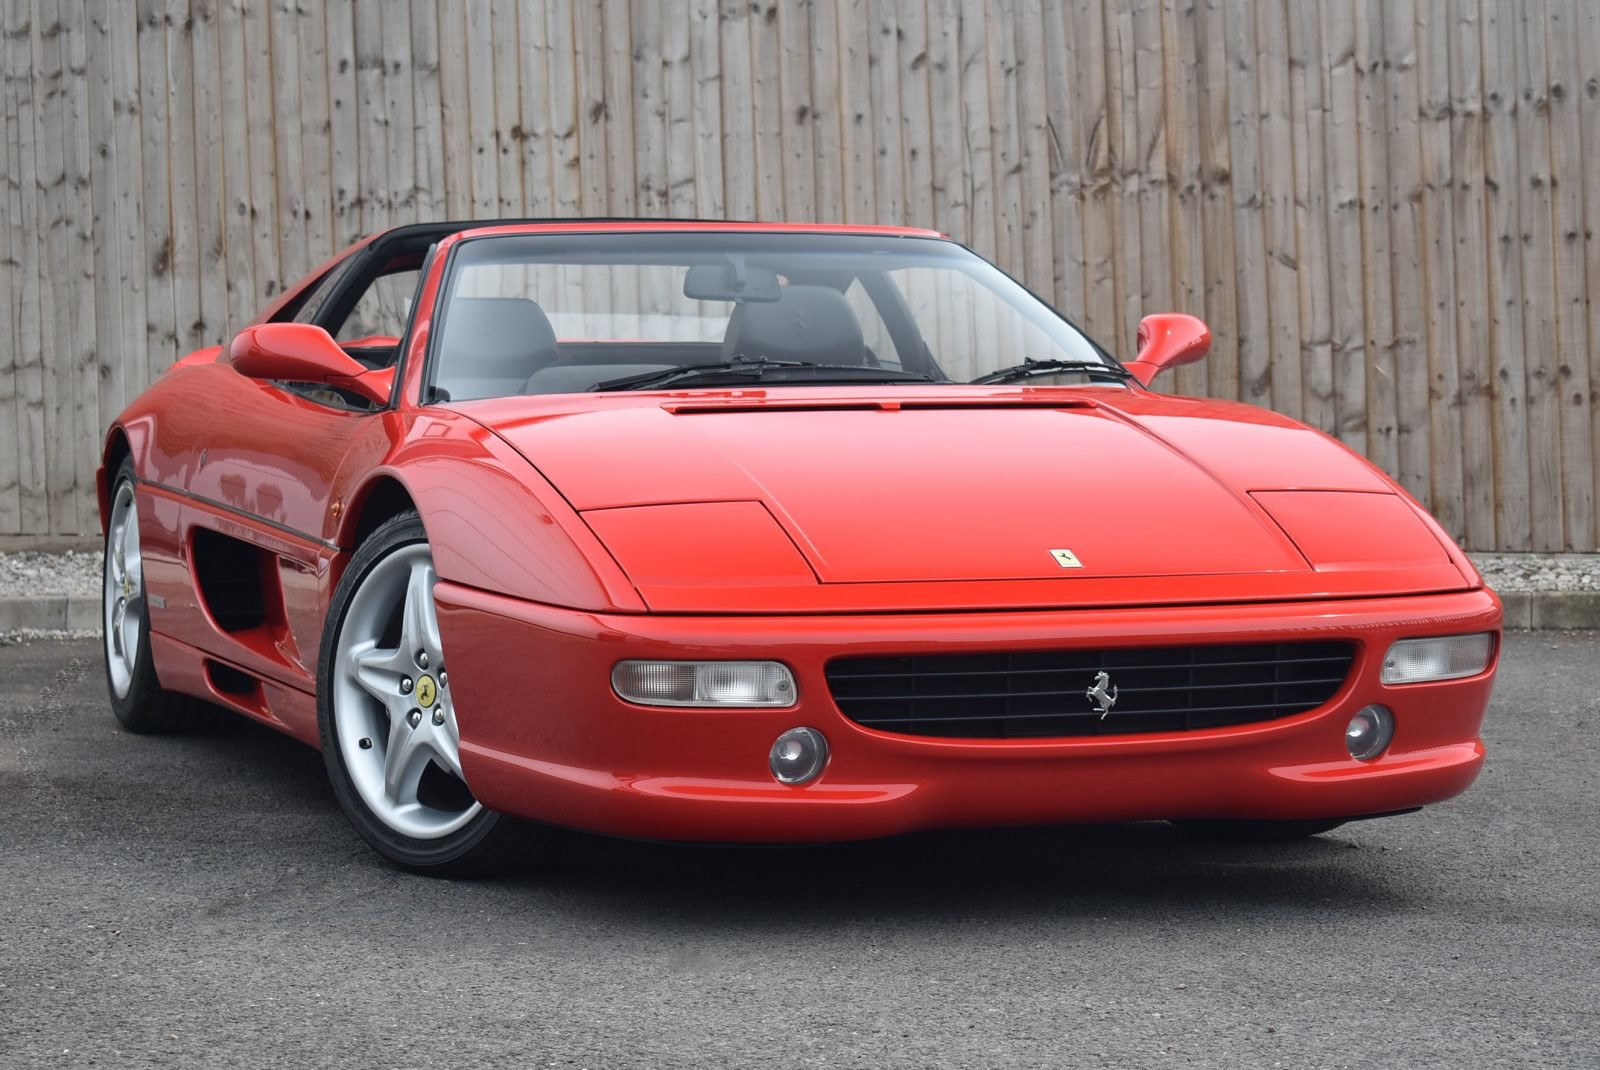 1999 (T) Ferrari F355 3.5 GTS 2dr For Sale (picture 1 of 6)